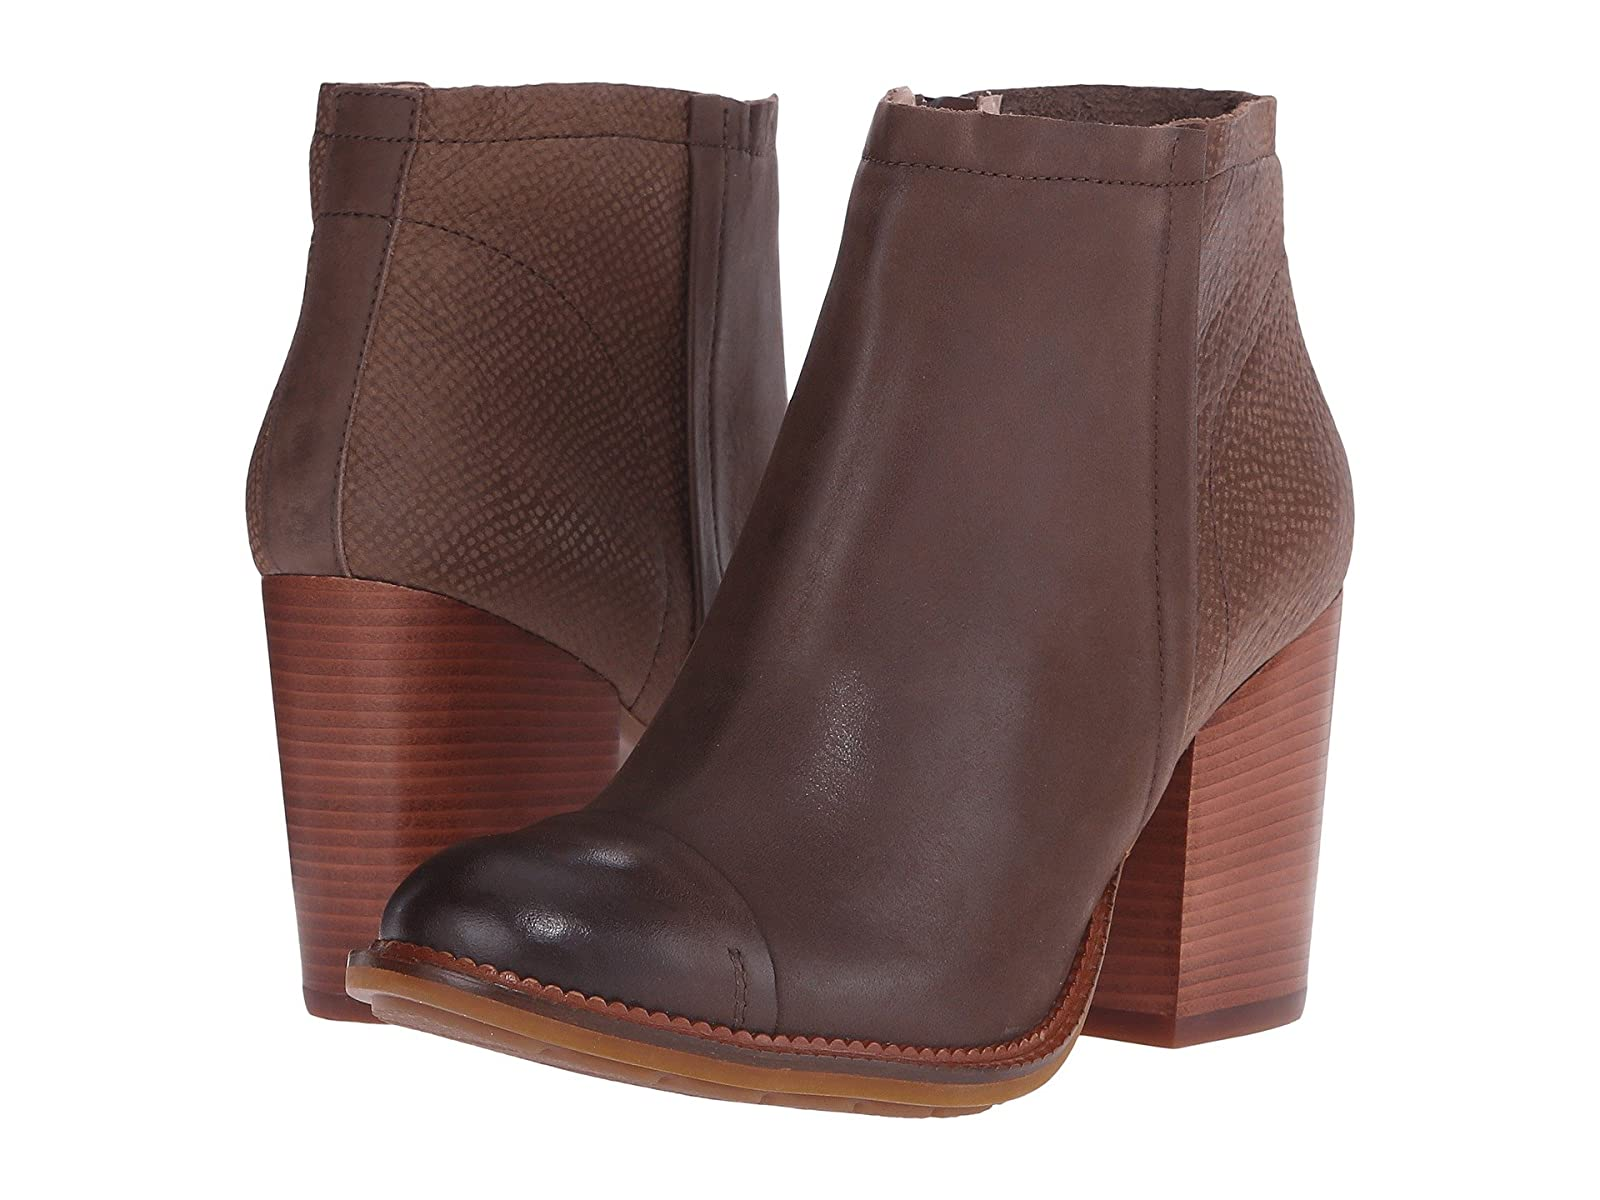 Hush Puppies Axelle DeweyCheap and distinctive eye-catching shoes